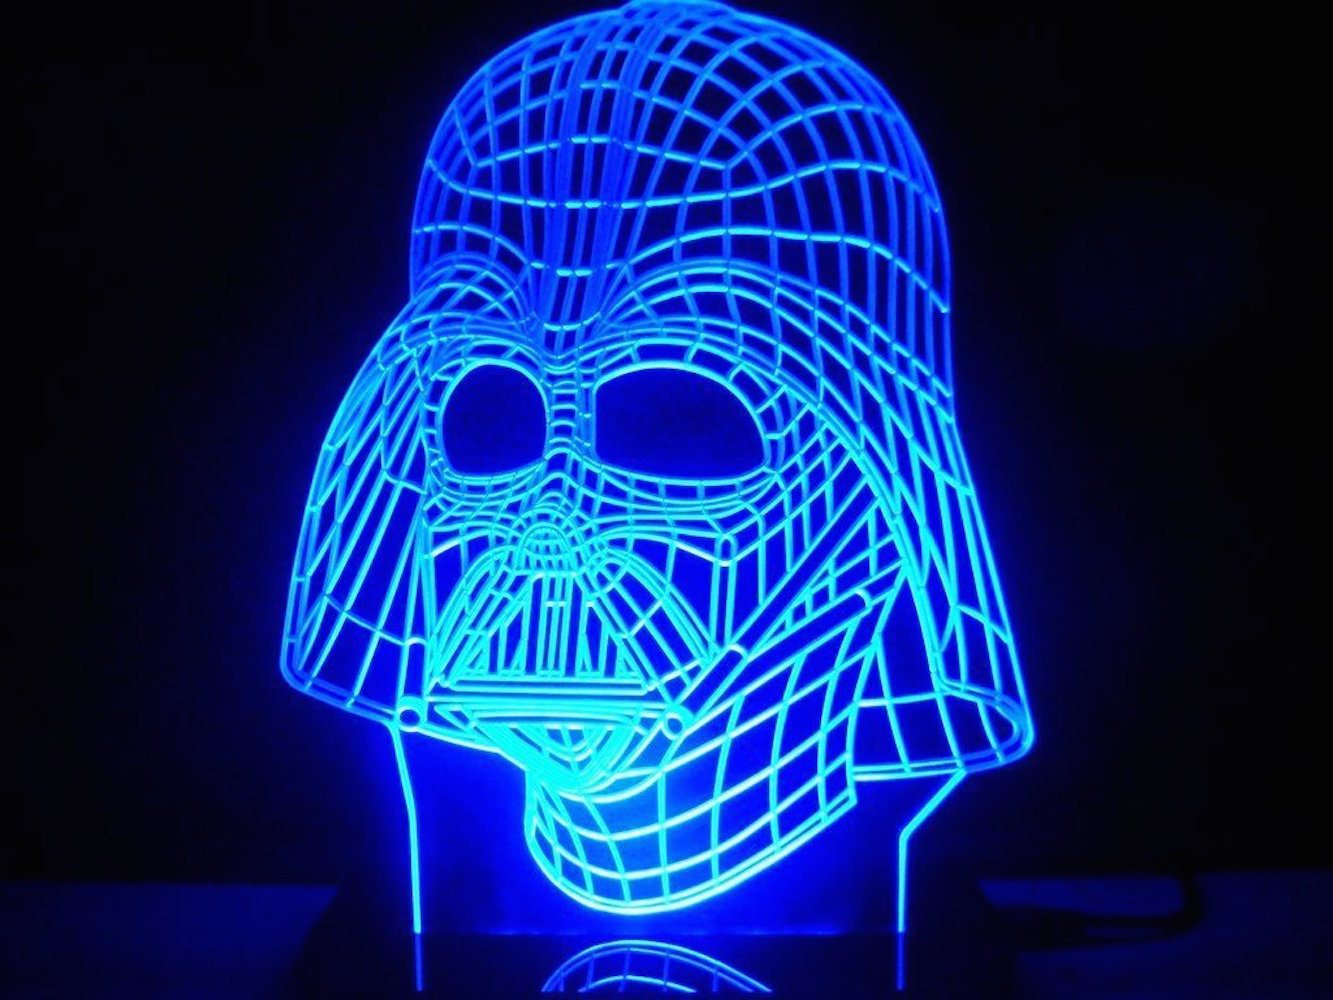 Darth Vader Led Light Table Lamp 187 Gadget Flow